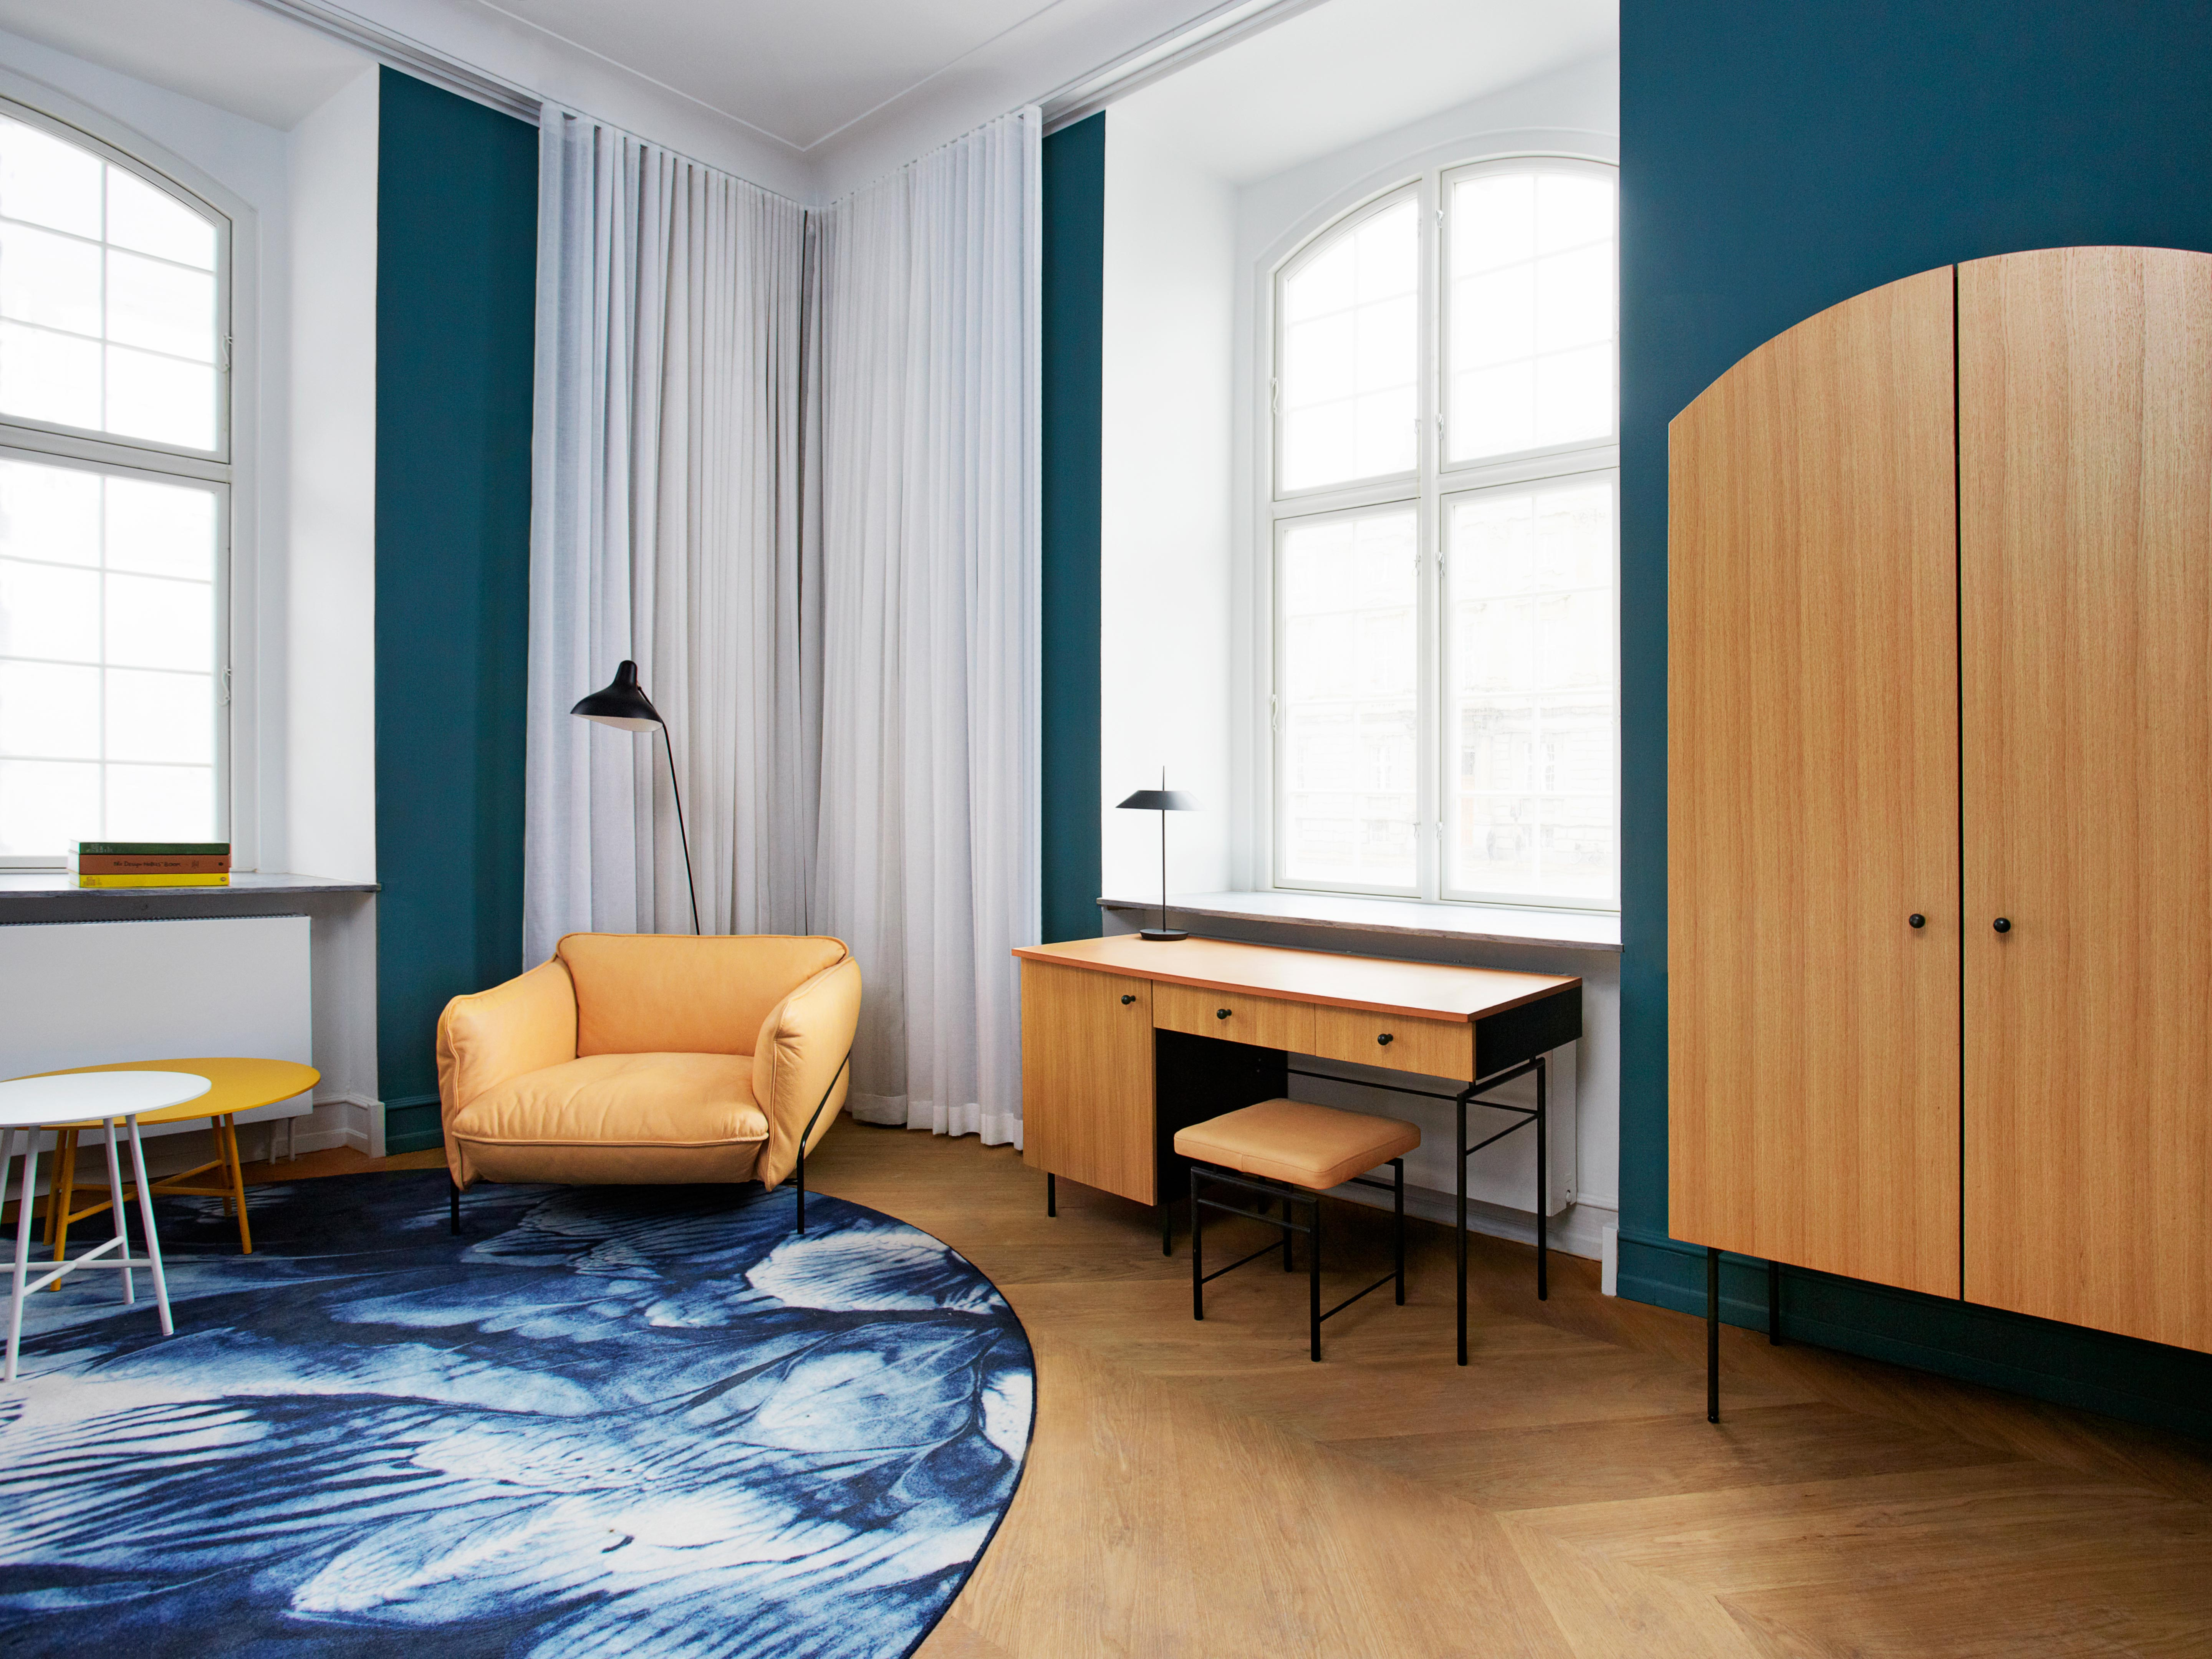 rooms suites at nobis hotel copenhagen in denmark design hotels. Black Bedroom Furniture Sets. Home Design Ideas